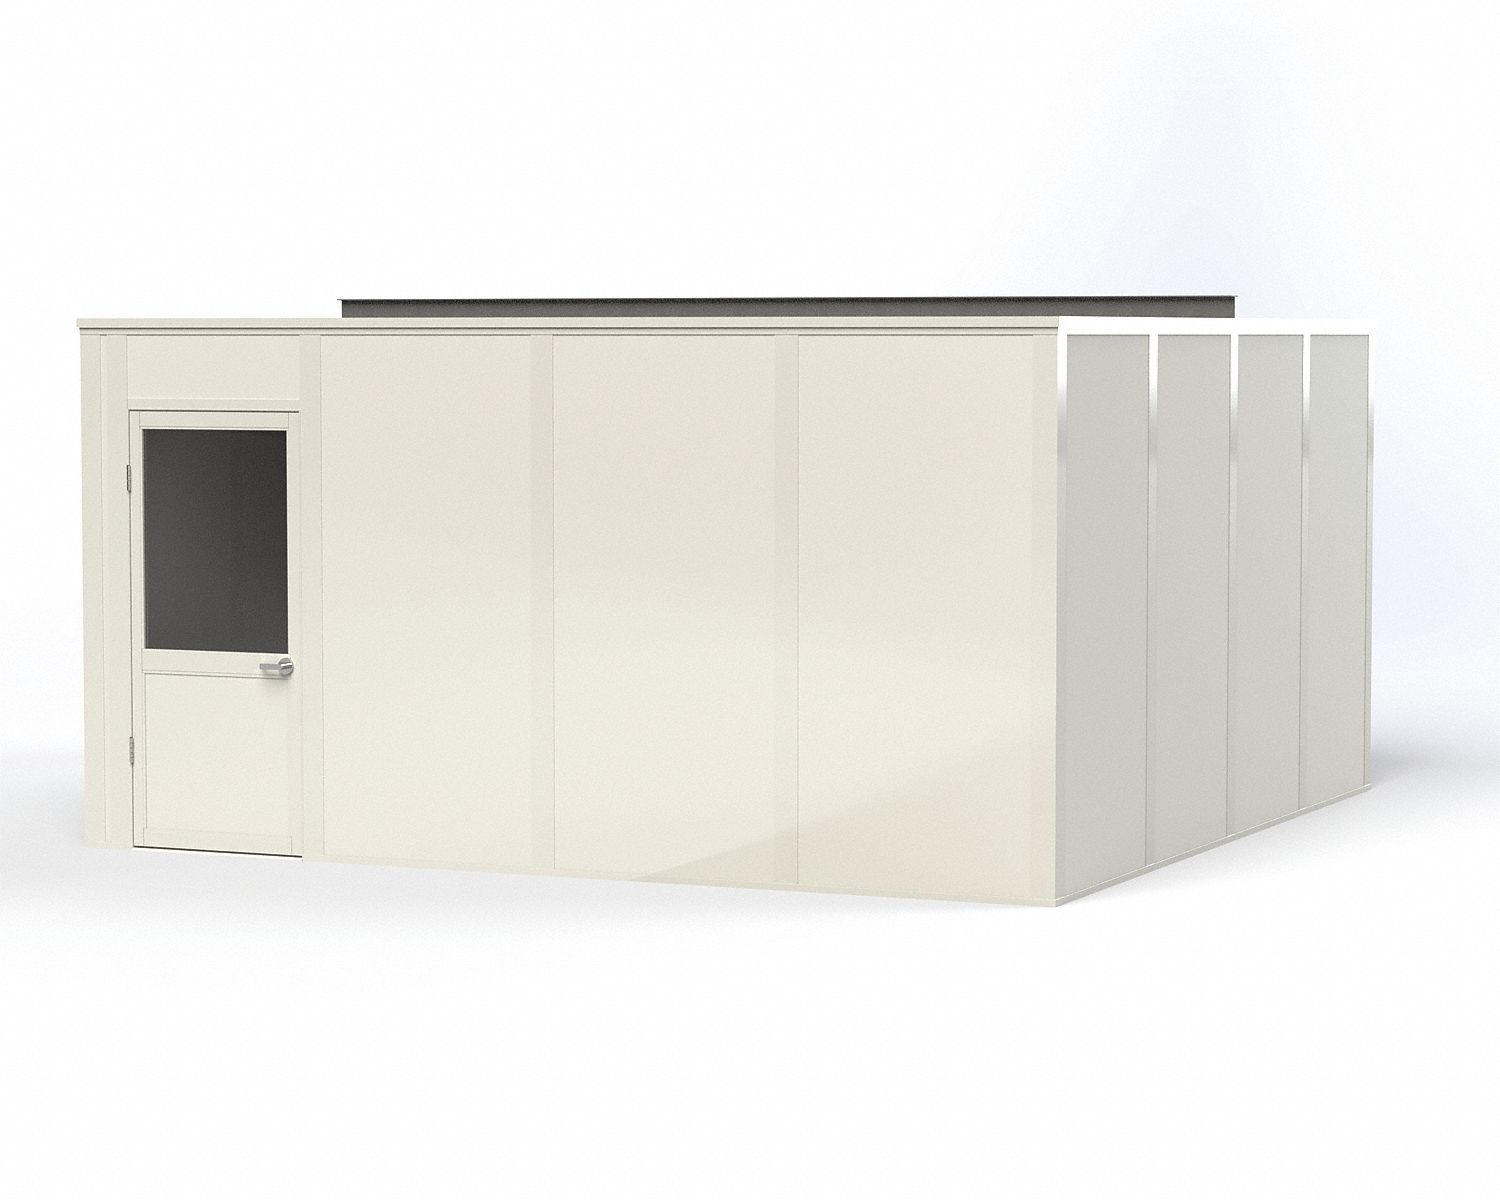 Modular In-Plant Office,  4-Wall,  16 ft. Width,  16 ft. Depth,  8 ft. Height